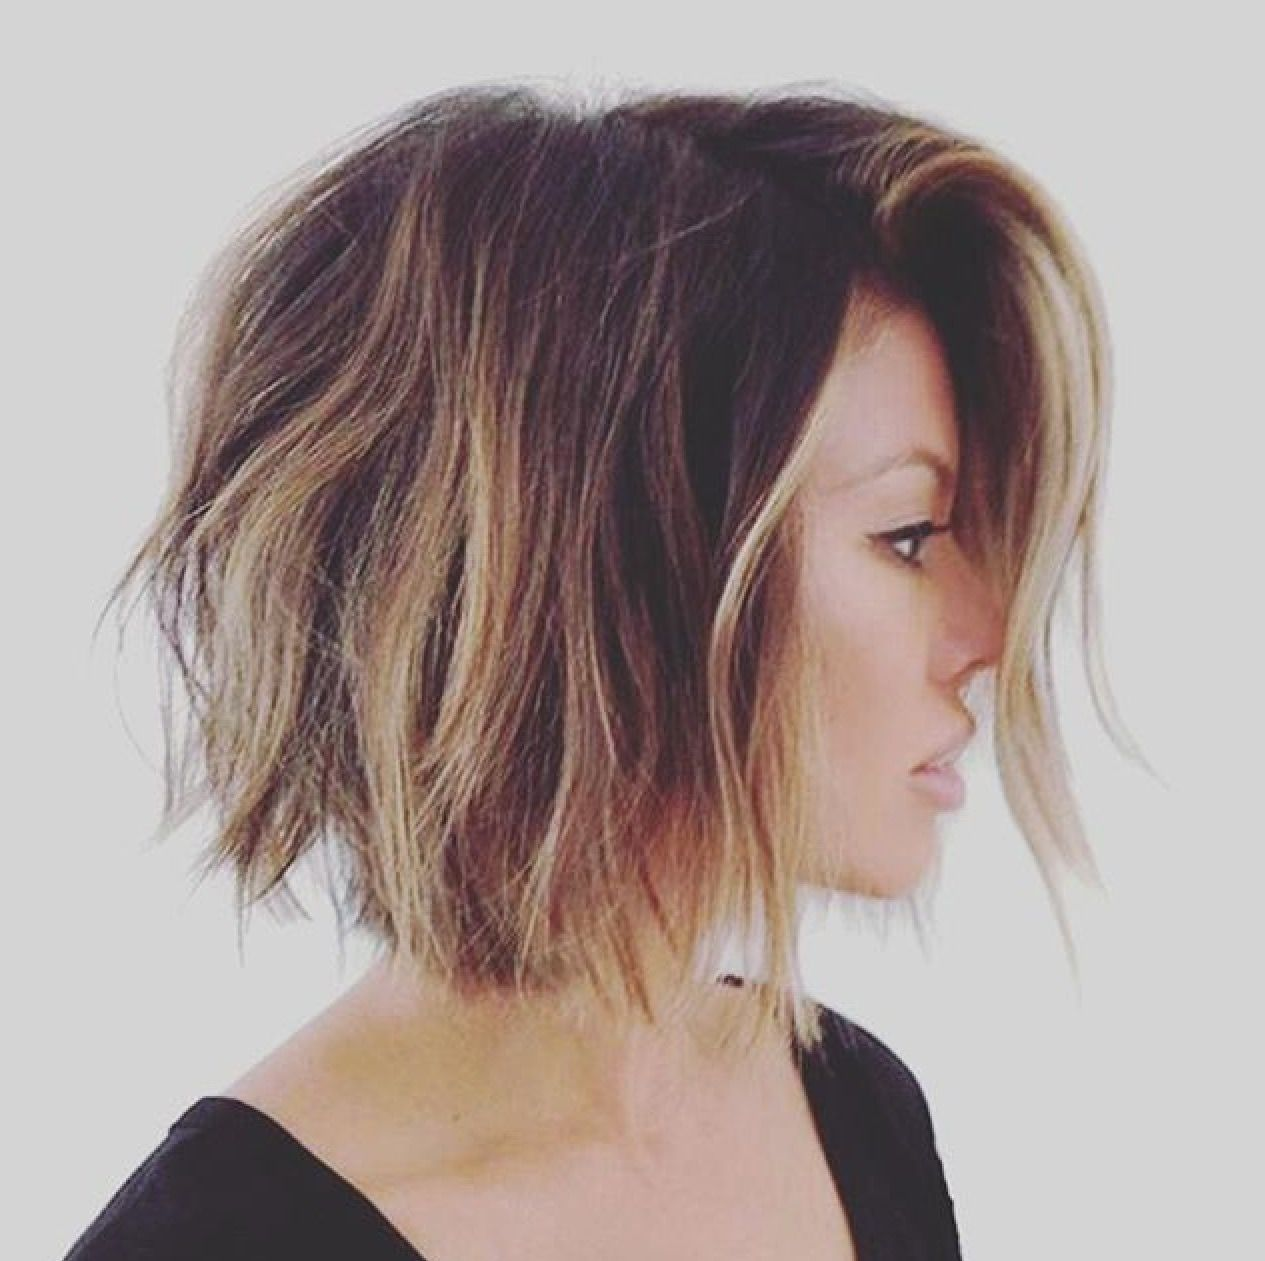 Pin by candace mcarthur on hair pinterest hair cuts bobs and